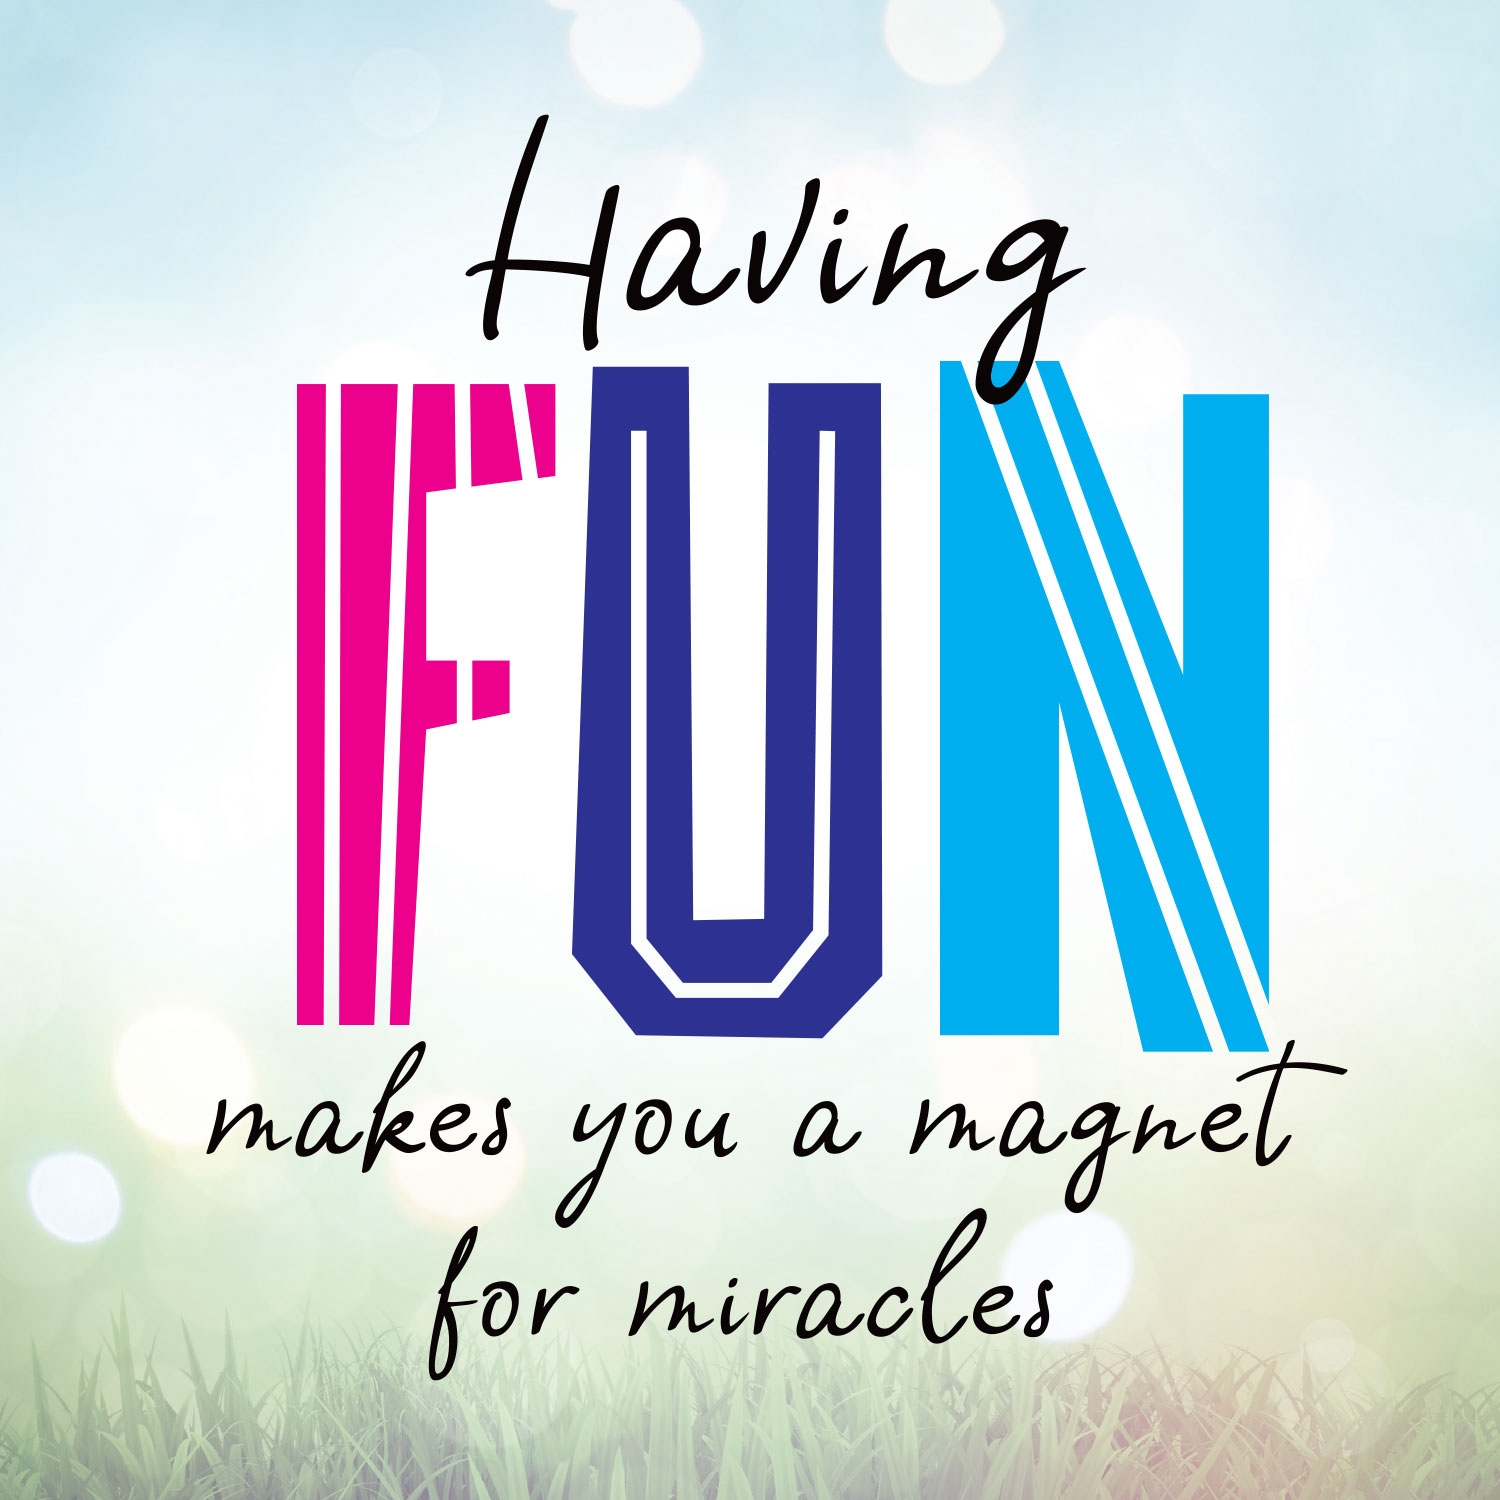 having fun makes you a magnet for miracles